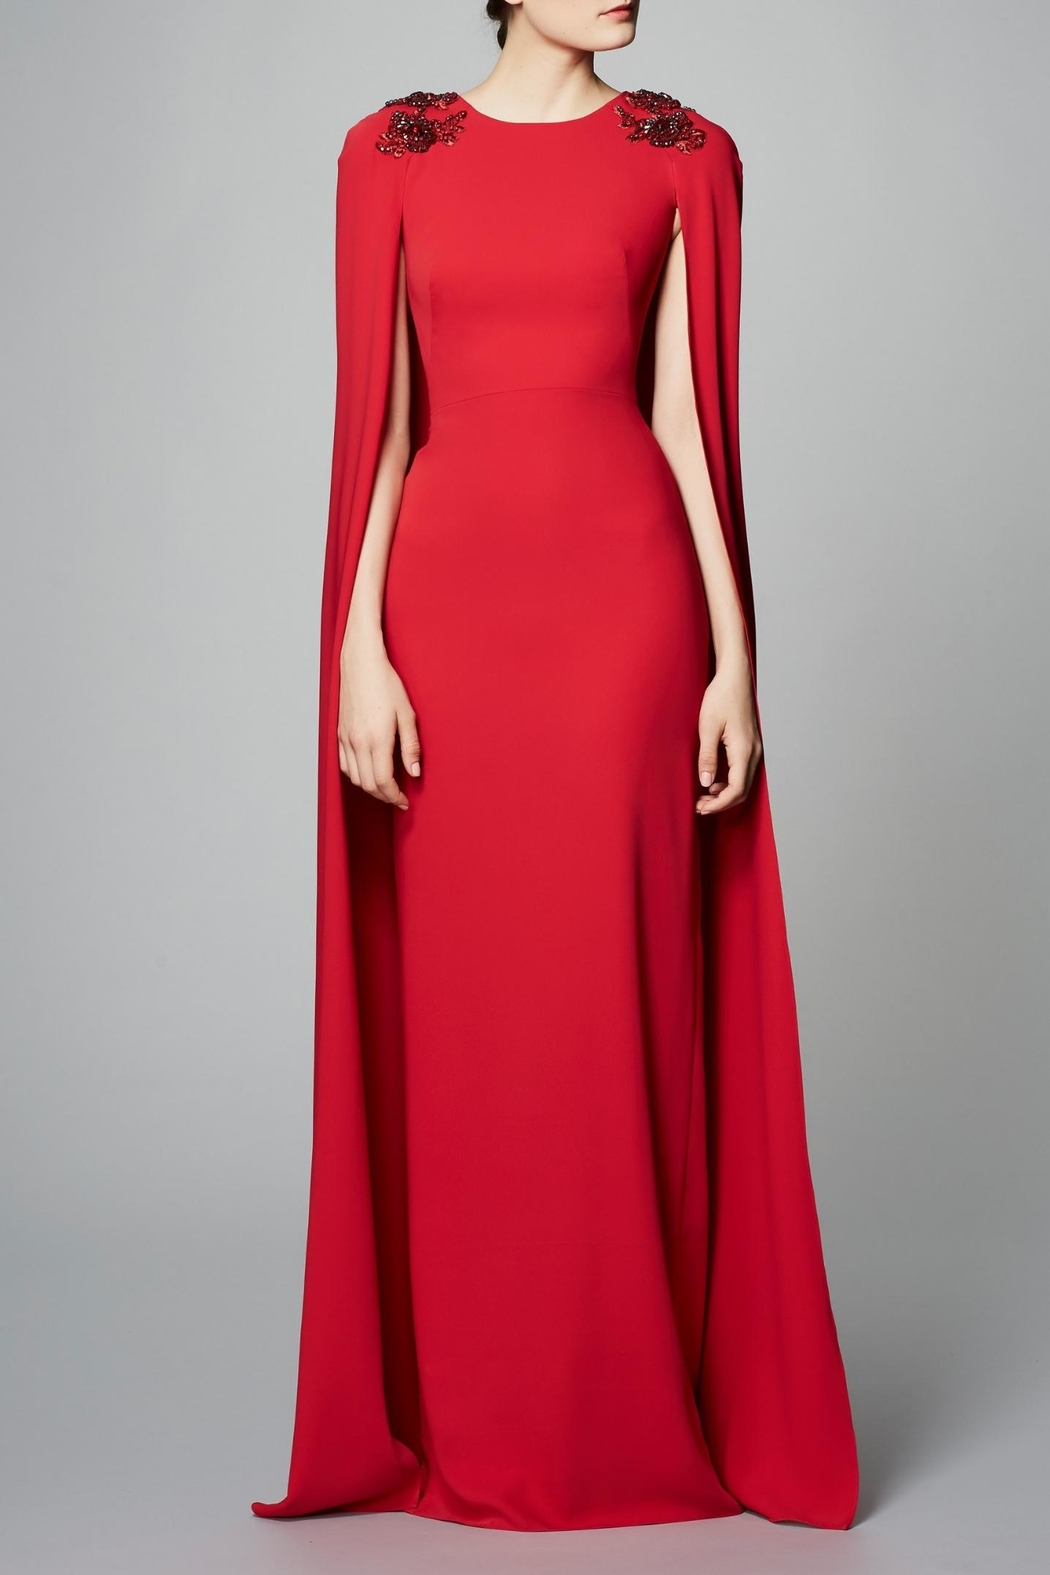 Notte by Marchesa Crepe Cape Gown - Main Image